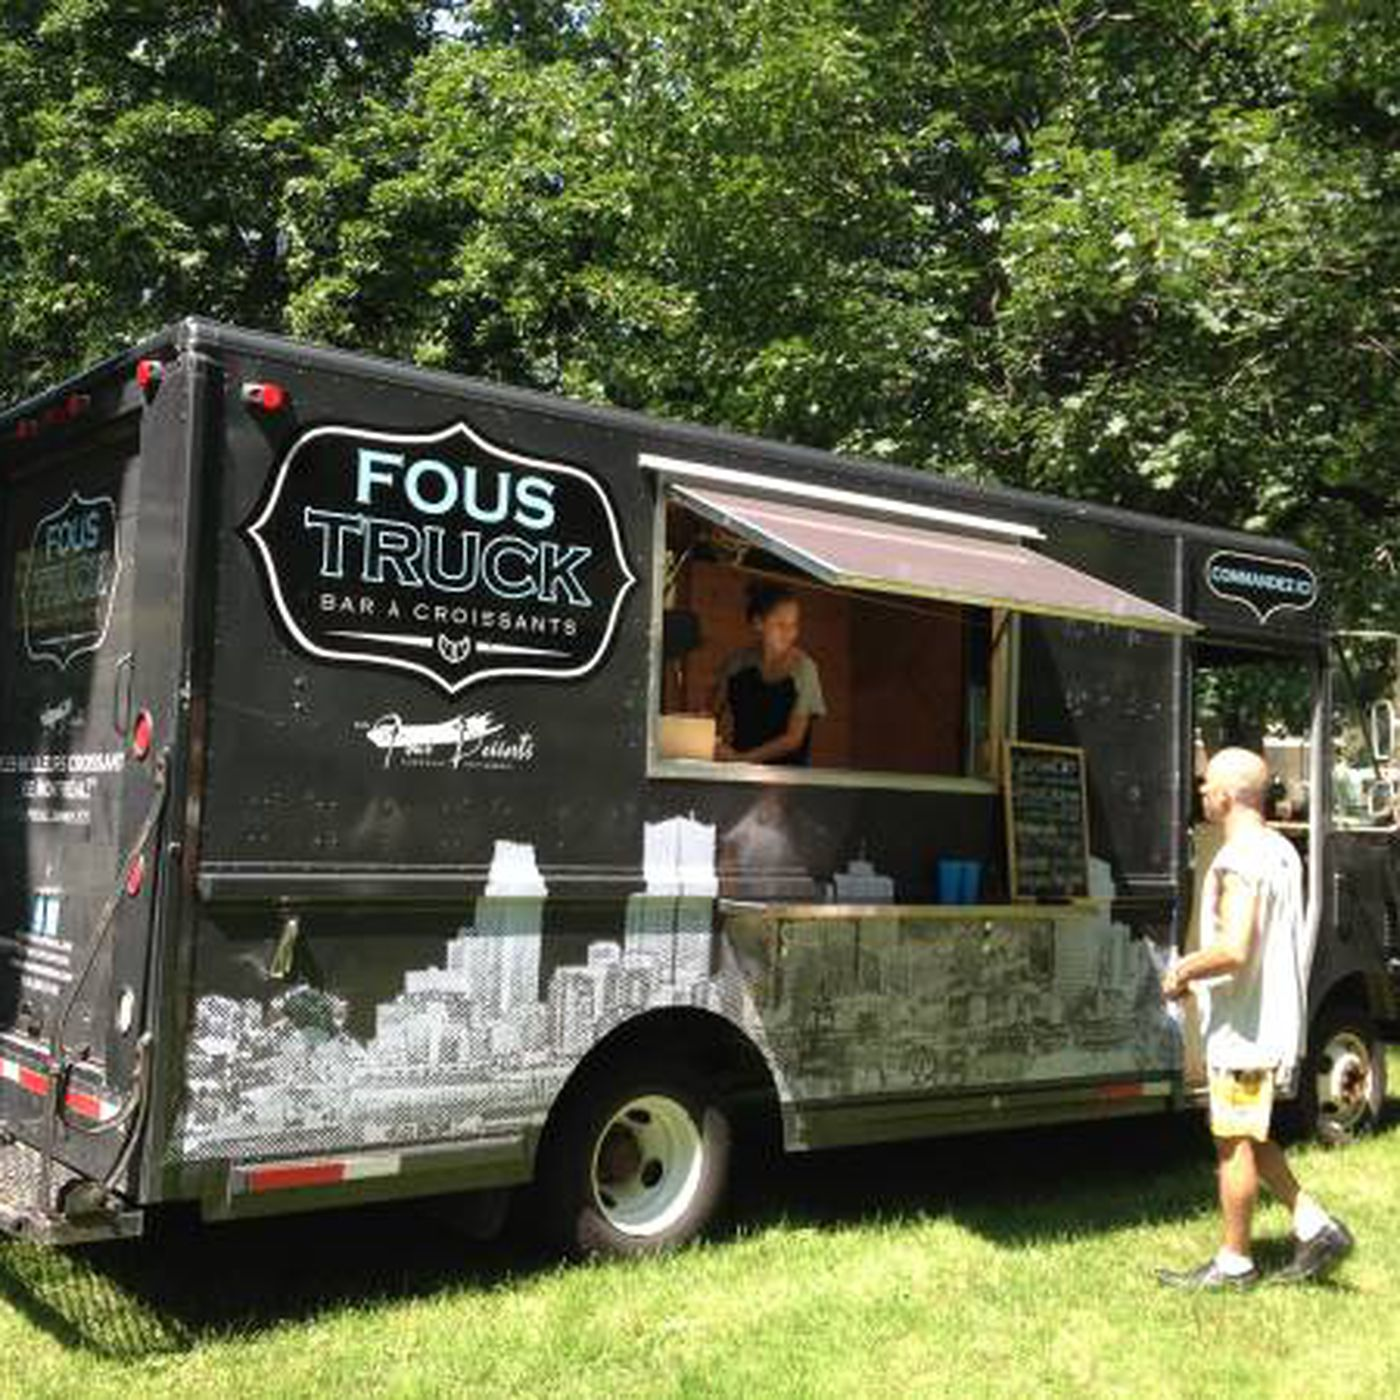 Two More Montreal Food Trucks Up for Sale Eater Montreal